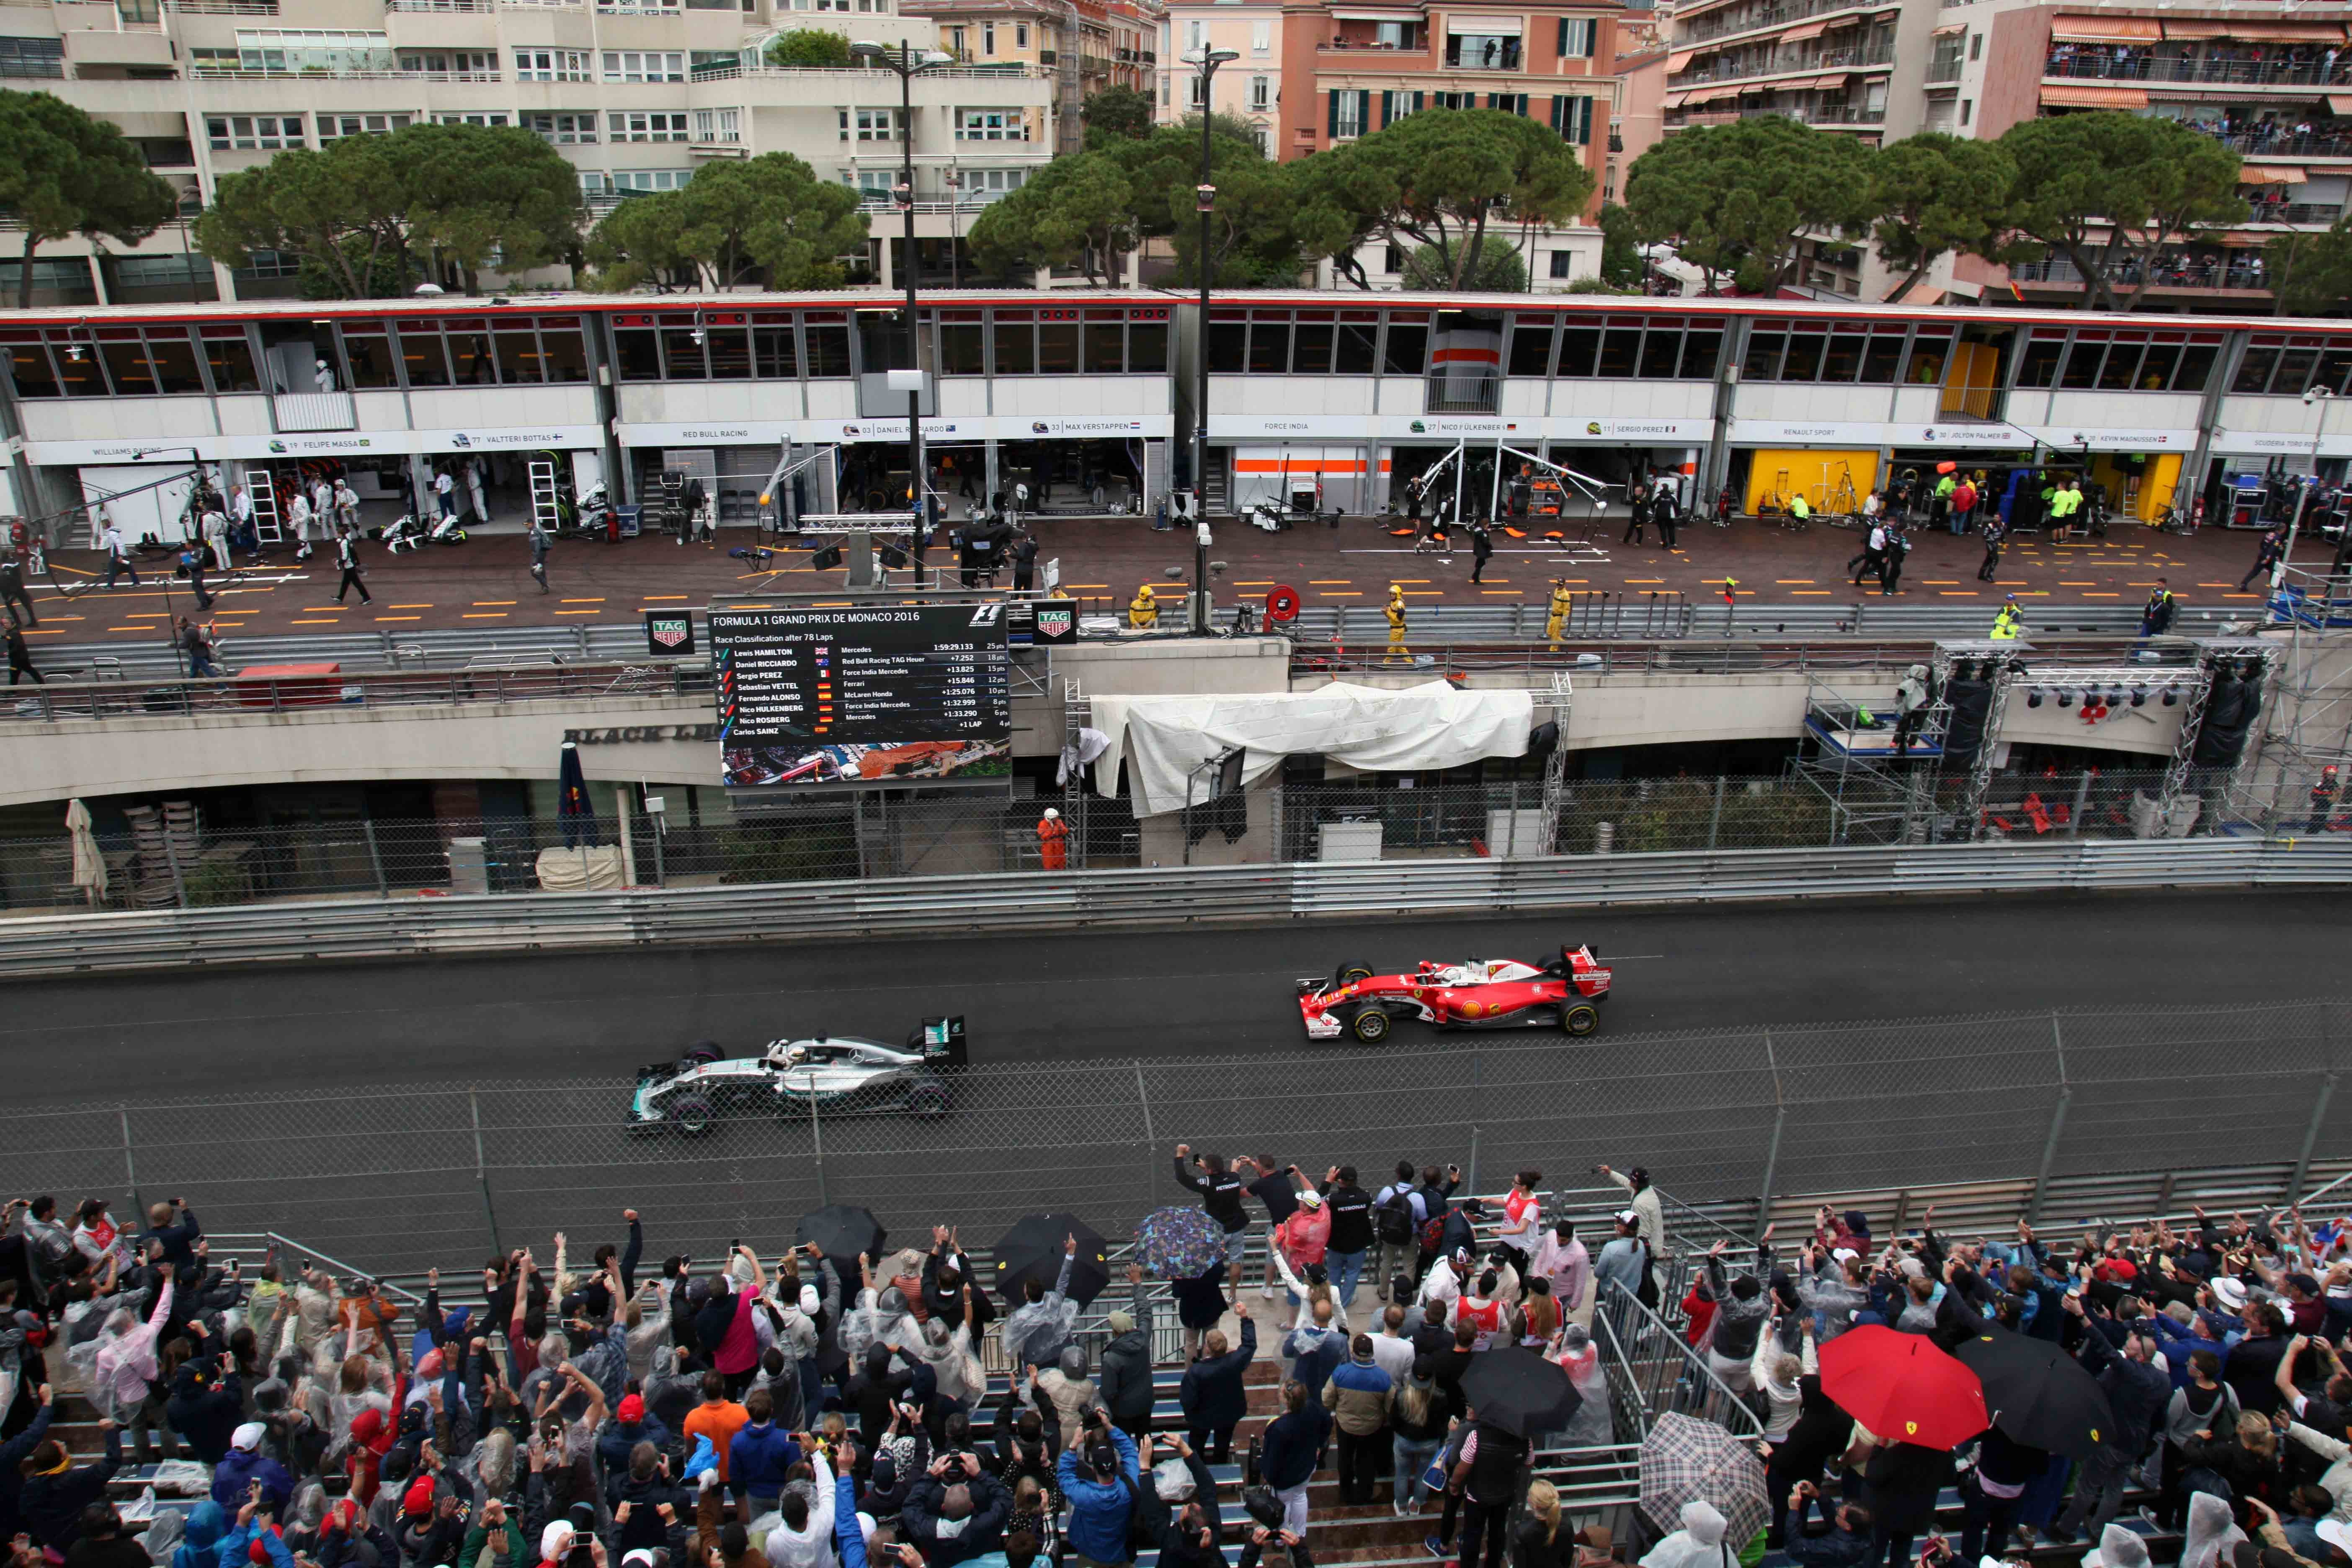 Photo Report: Behind The Scenes At The Monaco Grand Prix 2016 With TAG Heuer CEO Jean-Claude Biver Photo Report: Behind The Scenes At The Monaco Grand Prix 2016 With TAG Heuer CEO Jean-Claude Biver IMG 0963